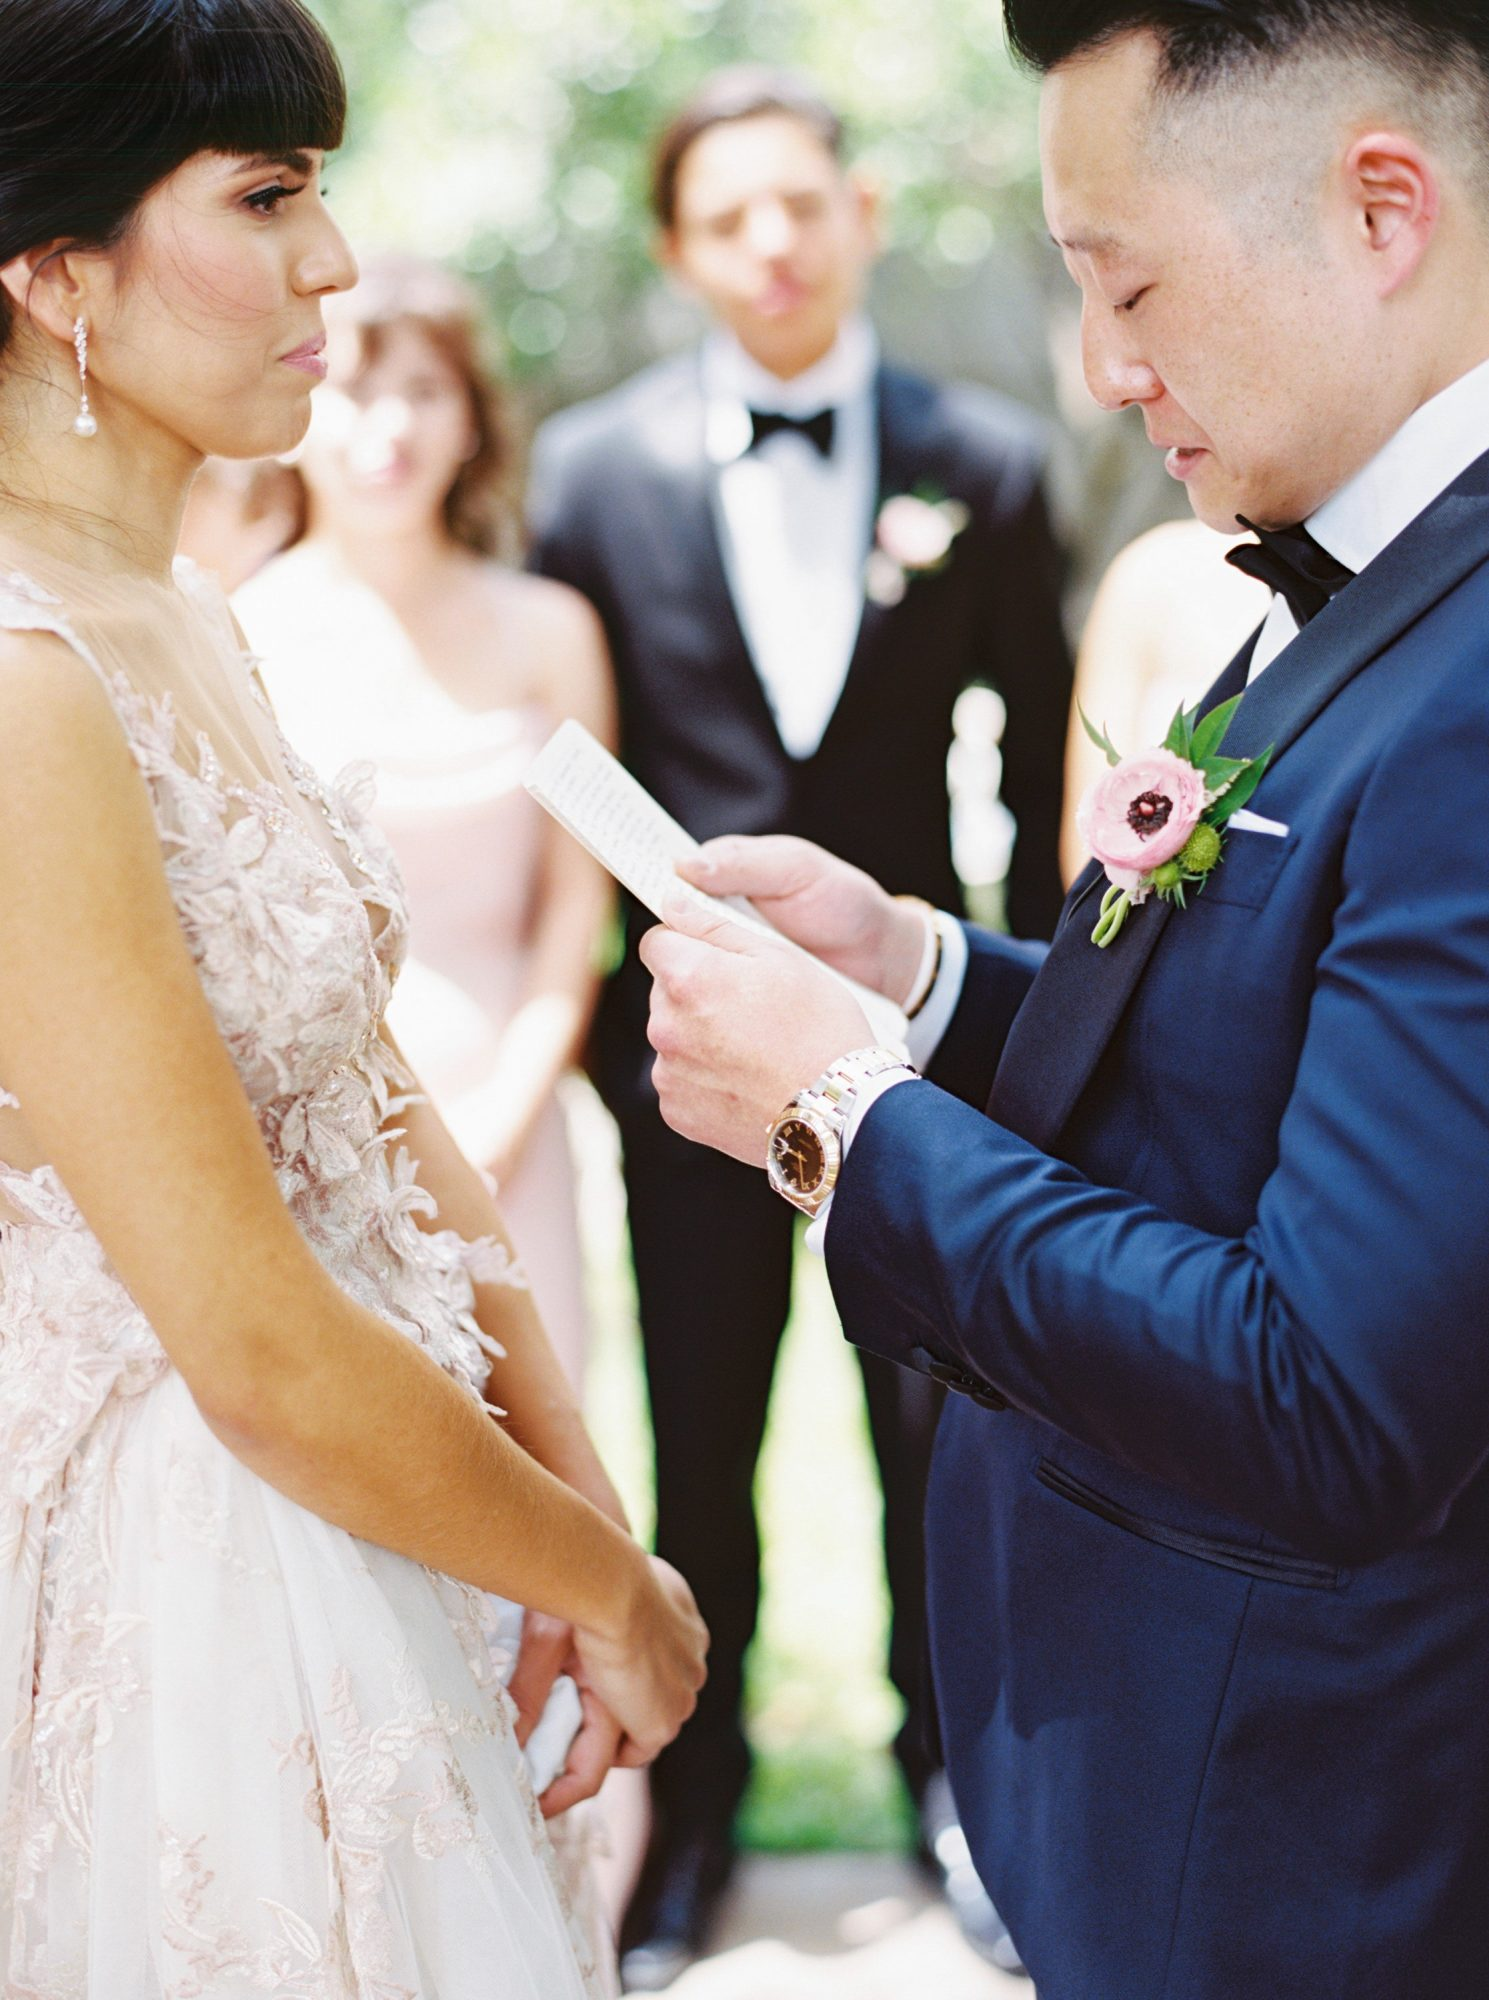 groom read vows to bride wedding party witness